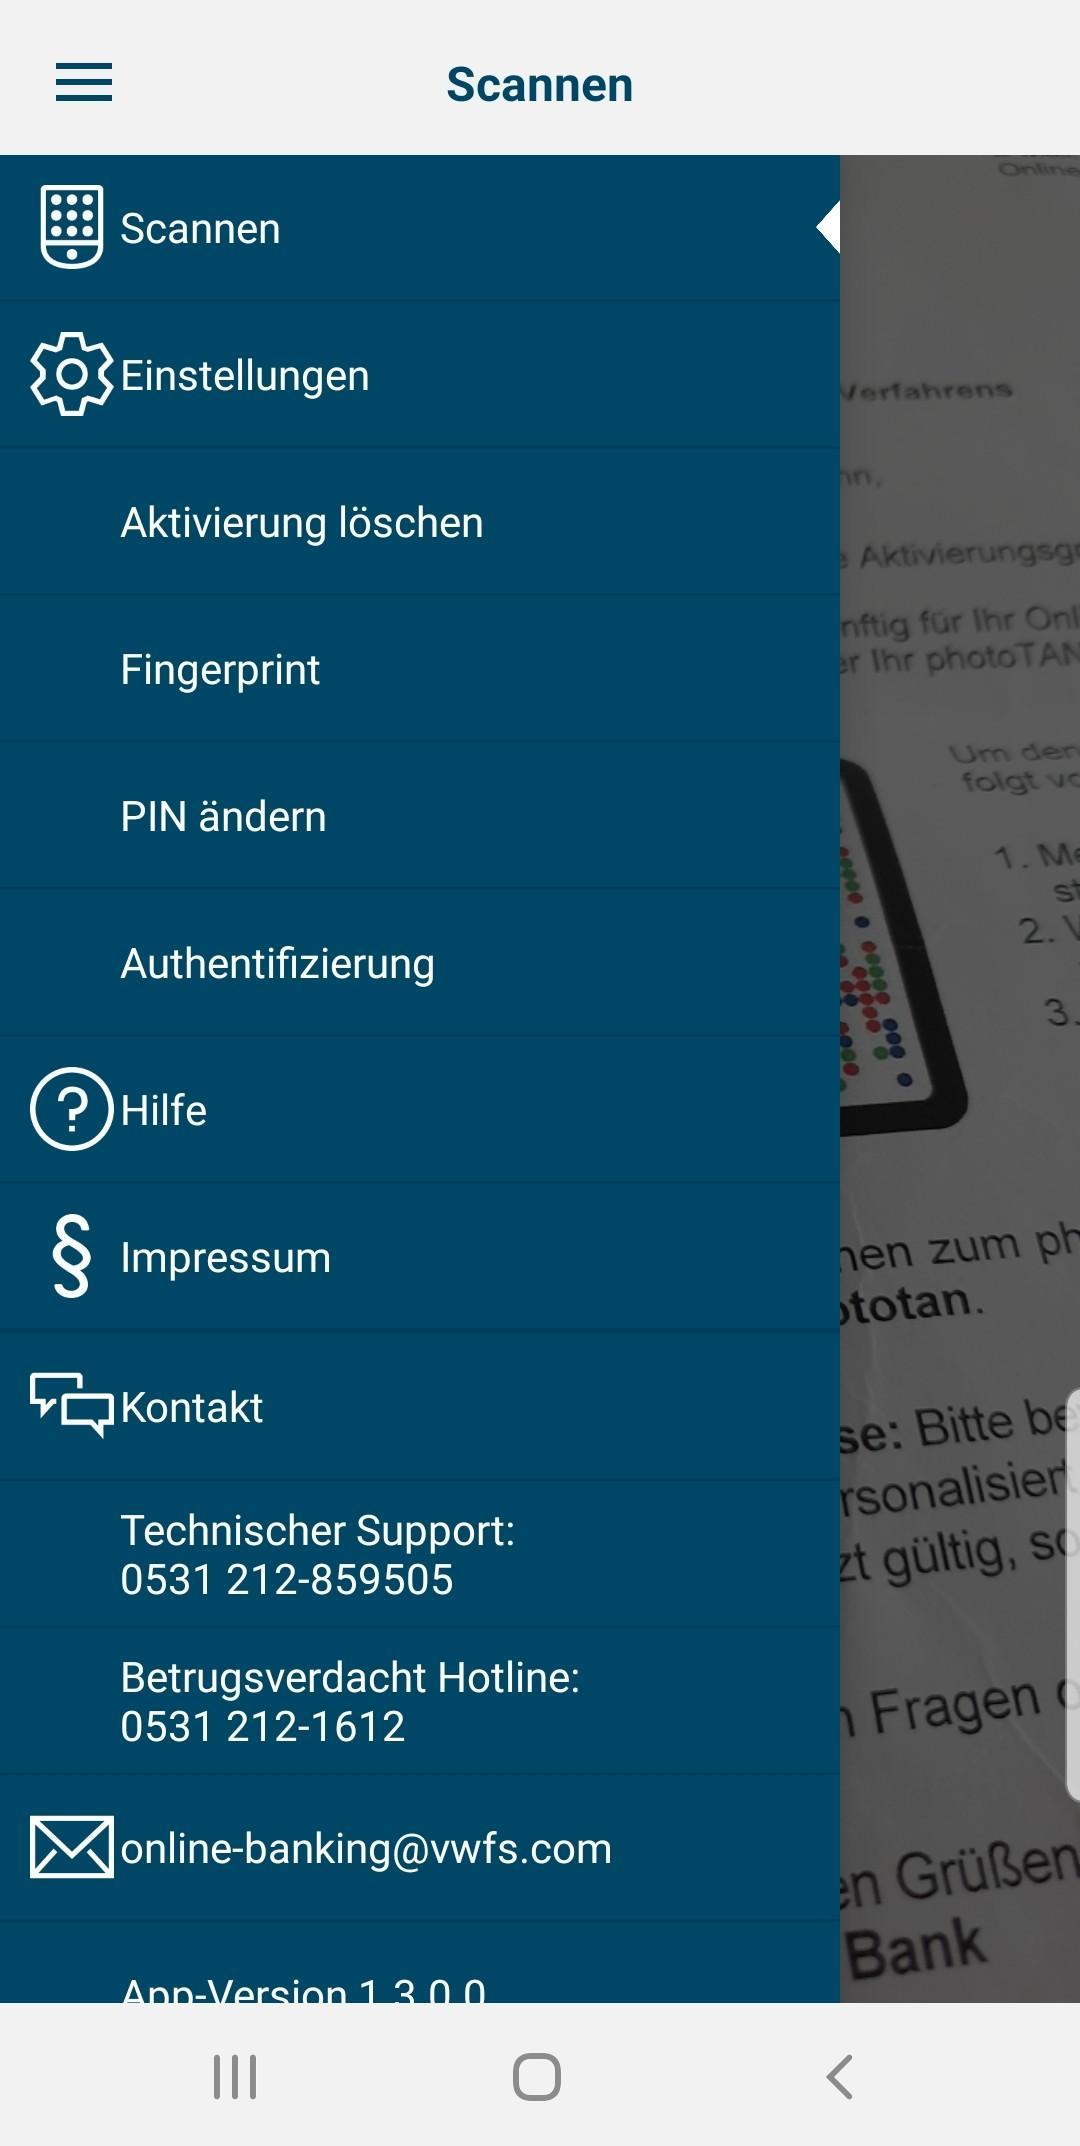 Vw Financial Services Phototan For Android Apk Download